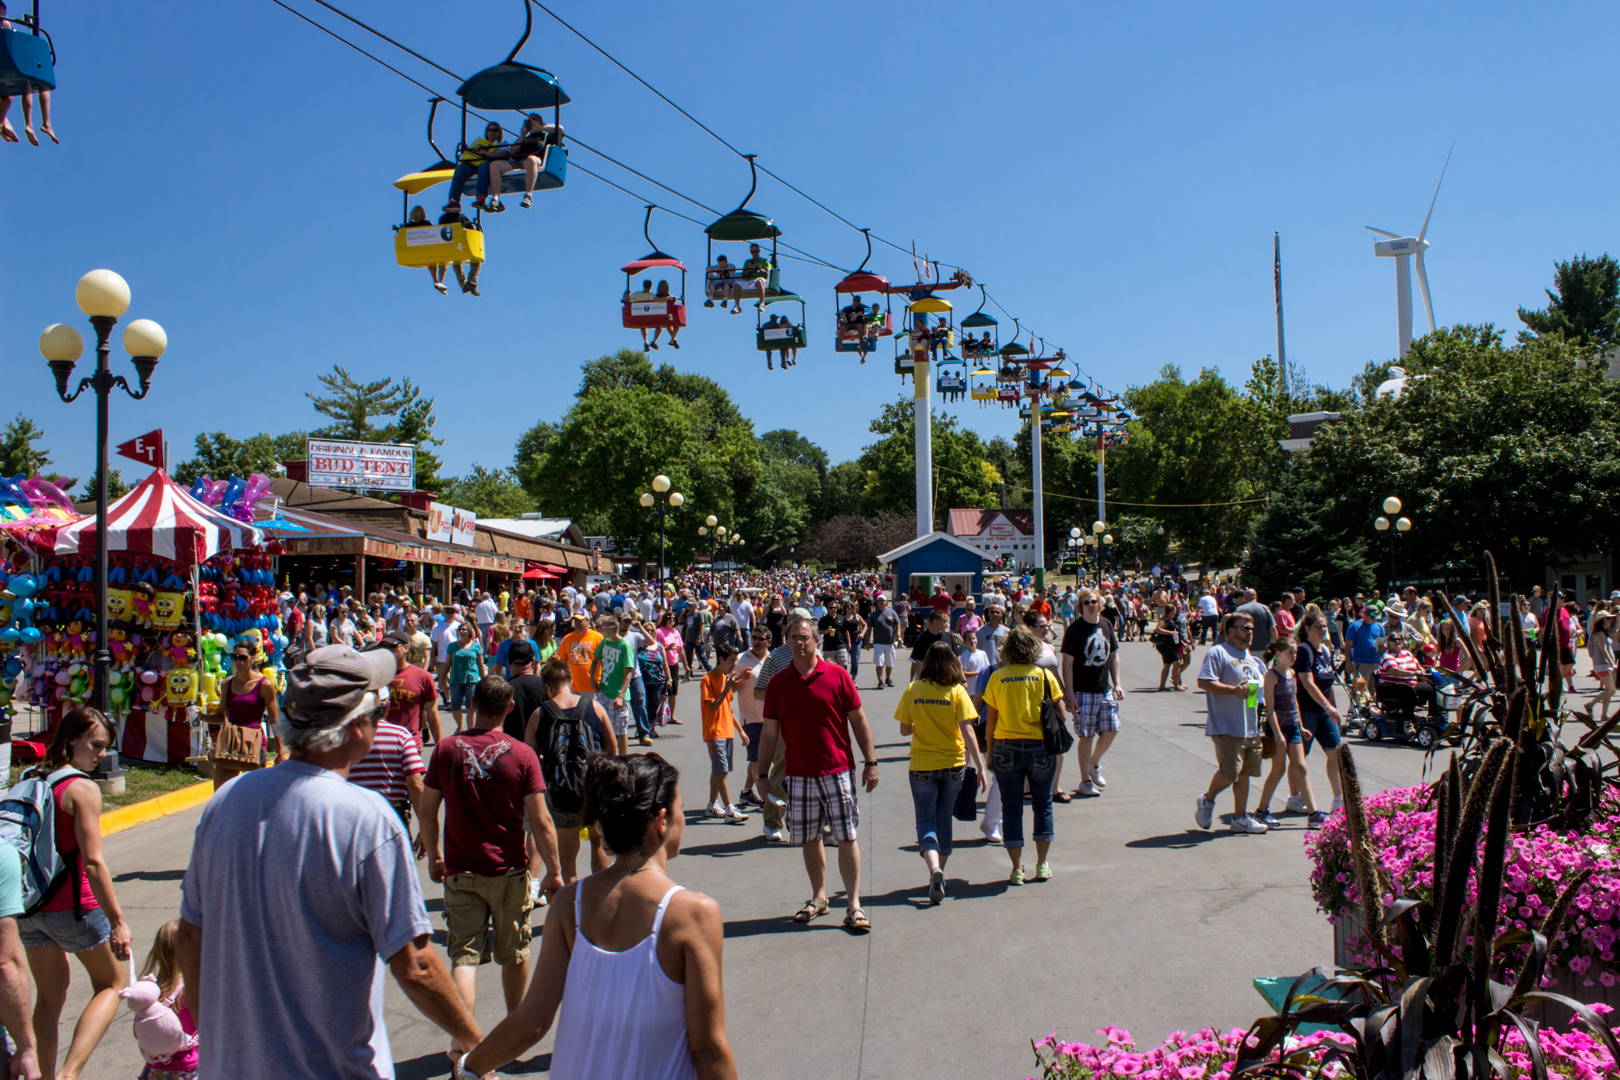 Iowa State Fair Concerts 2015 - Schedule and Tickets